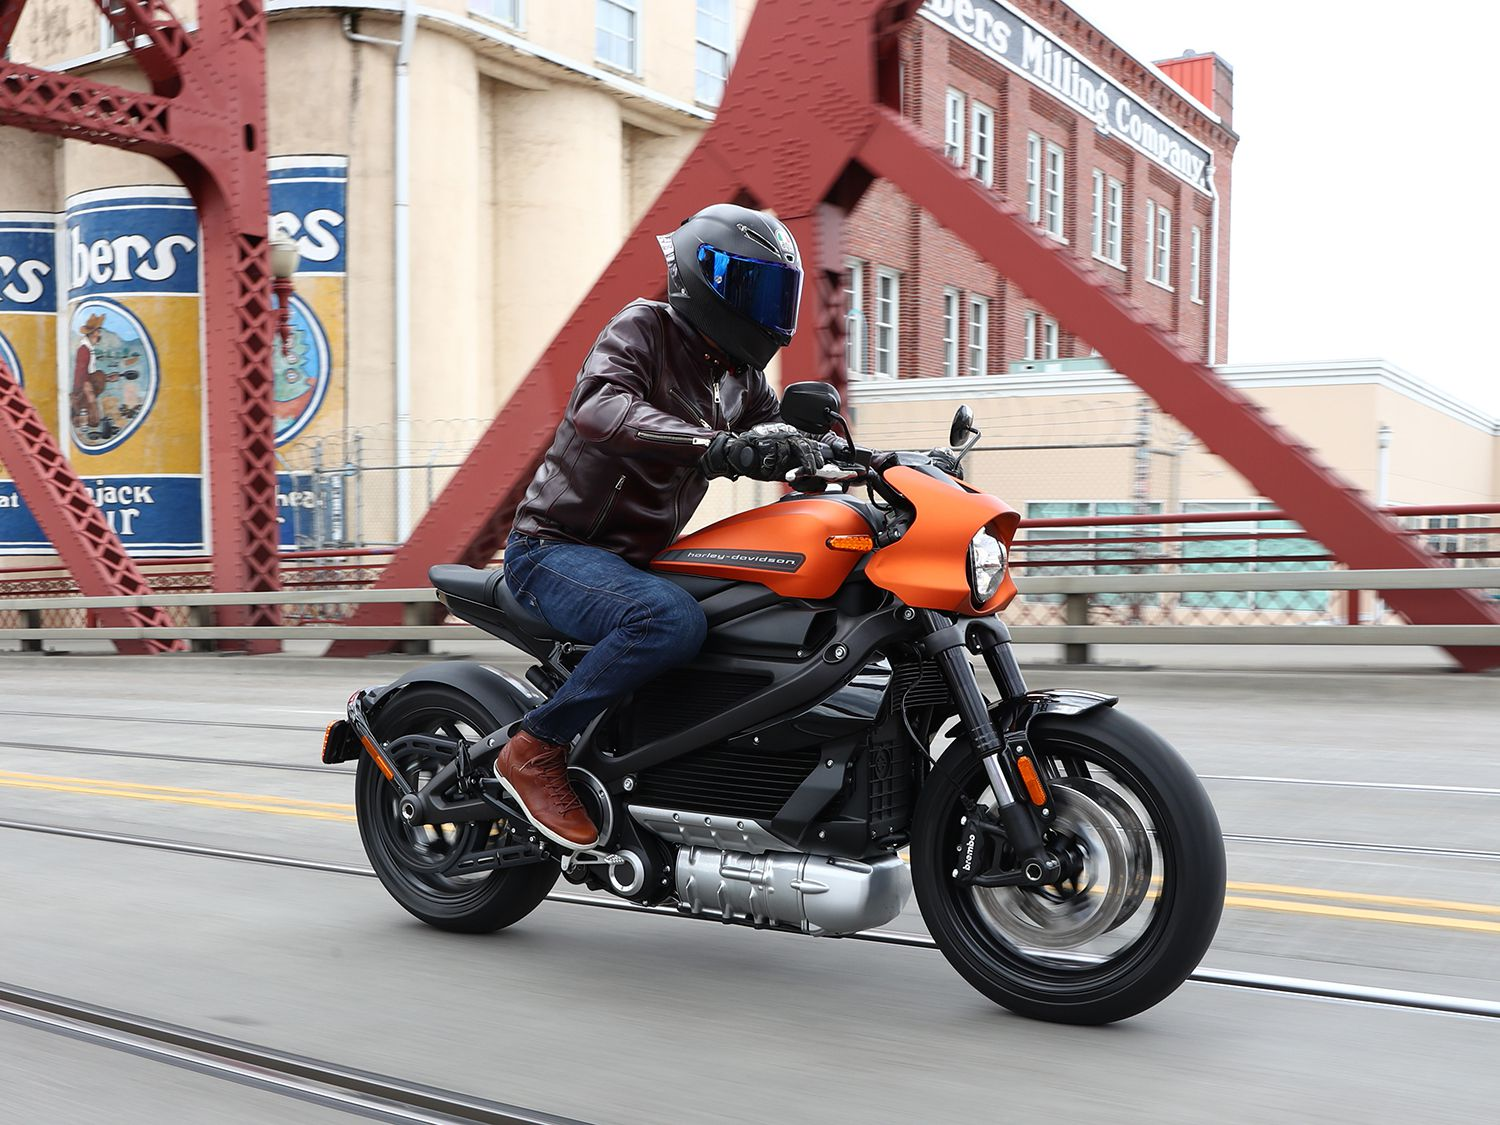 "<a  href=""https://www.motorcyclistonline.com/2020-harley-davidson-livewire-first-ride-review/"">2020 Harley-Davidson LiveWire First Ride Review</a>"